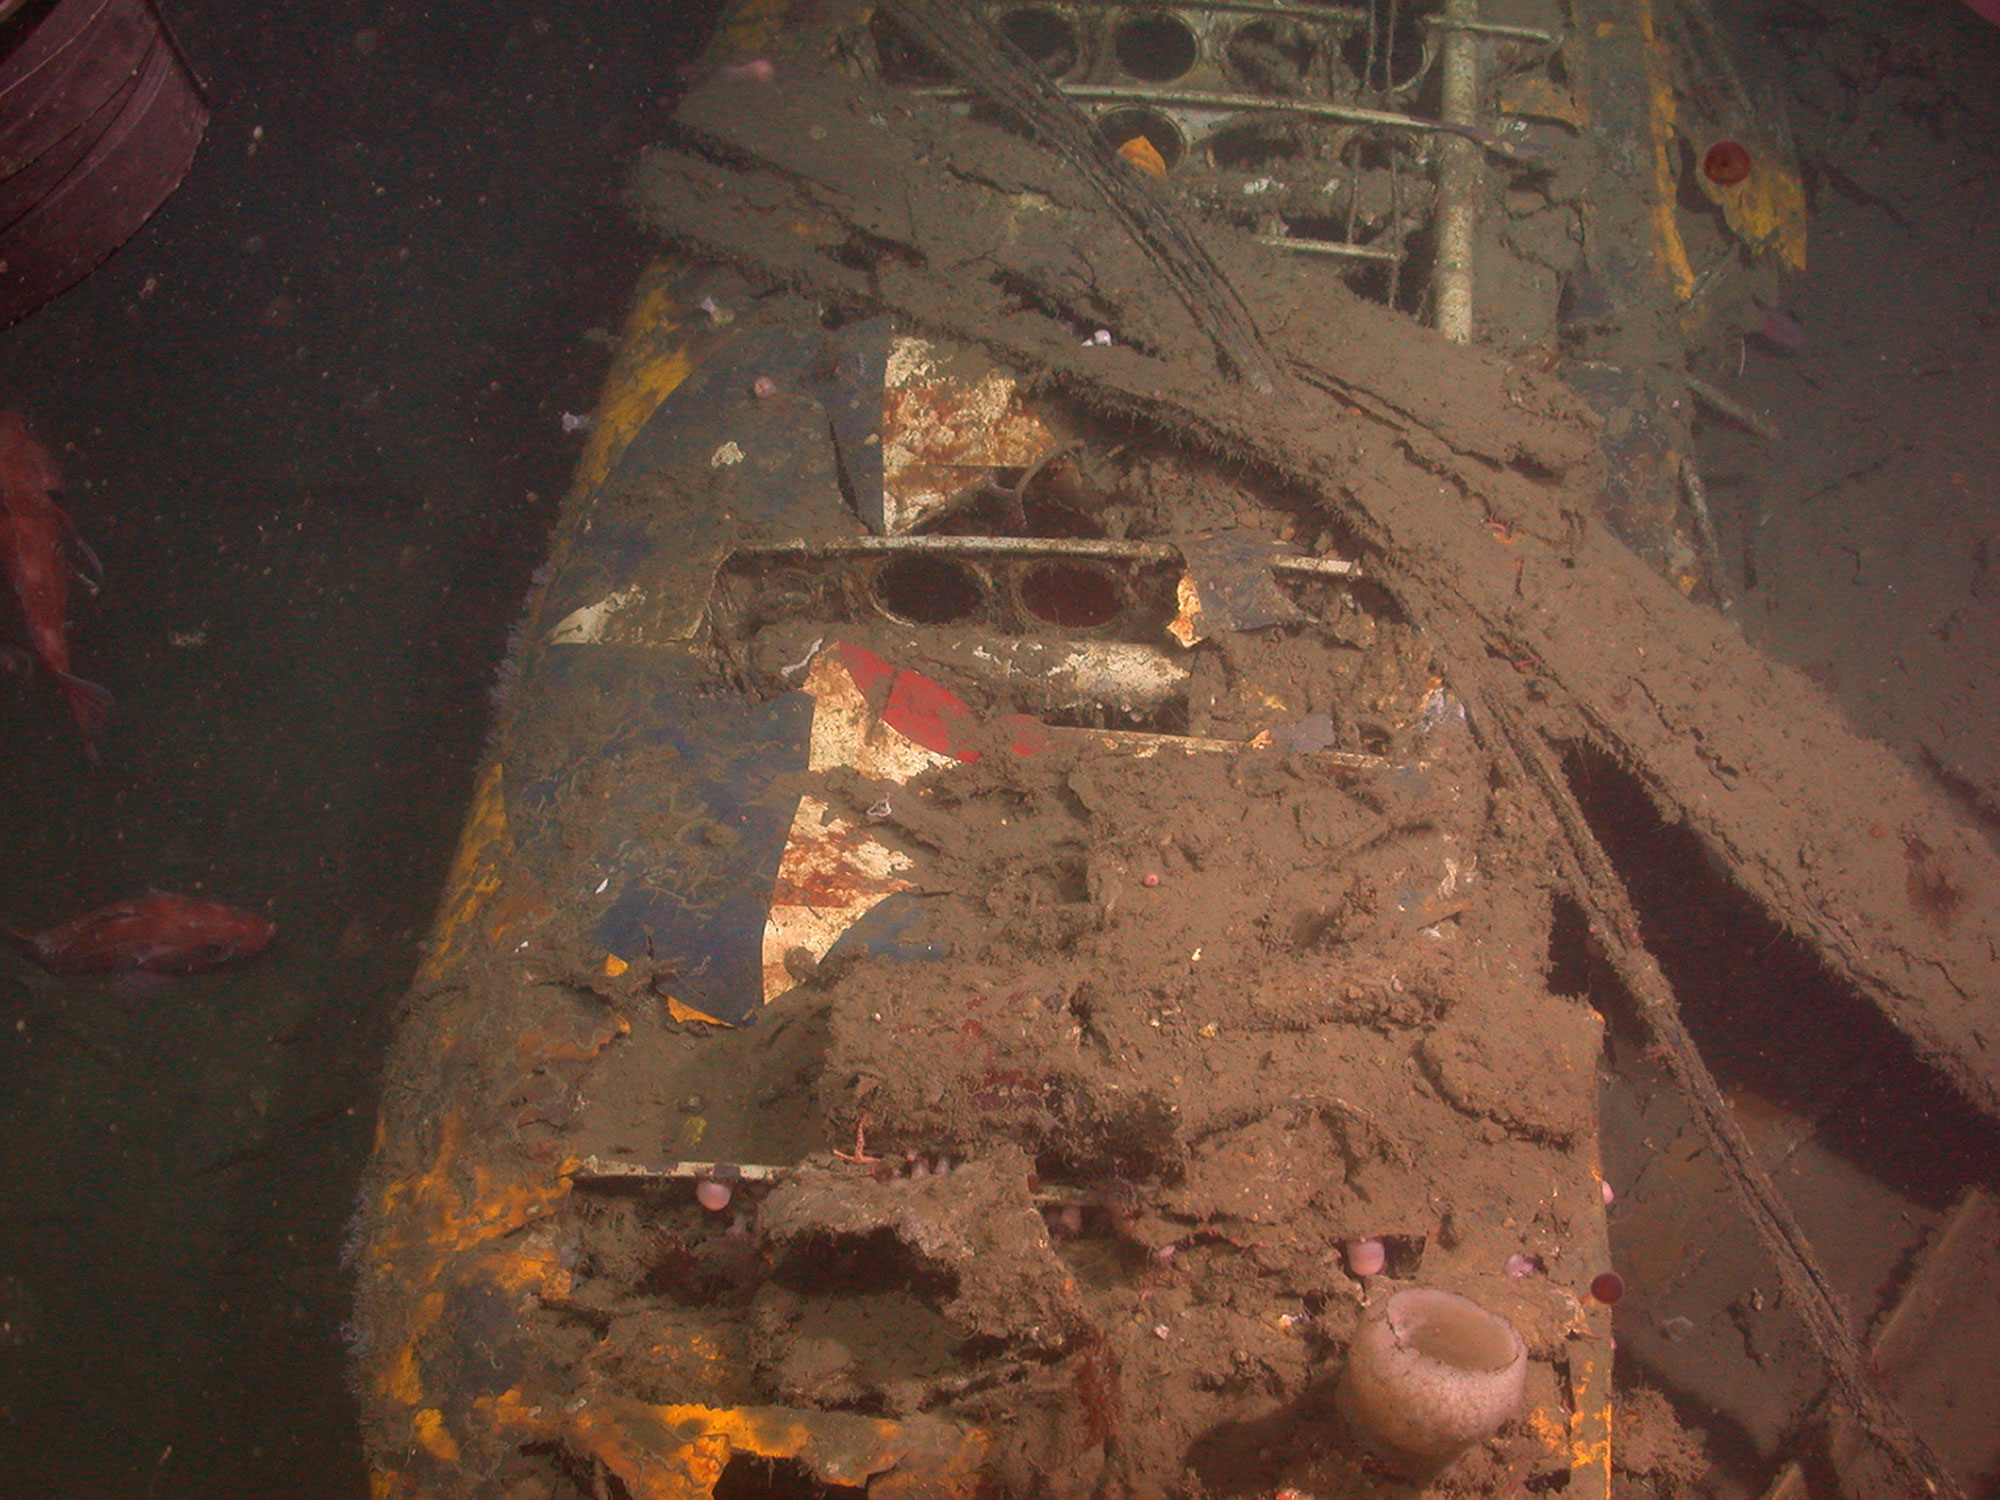 Wreck of Airship USS Macon Added to National Register of